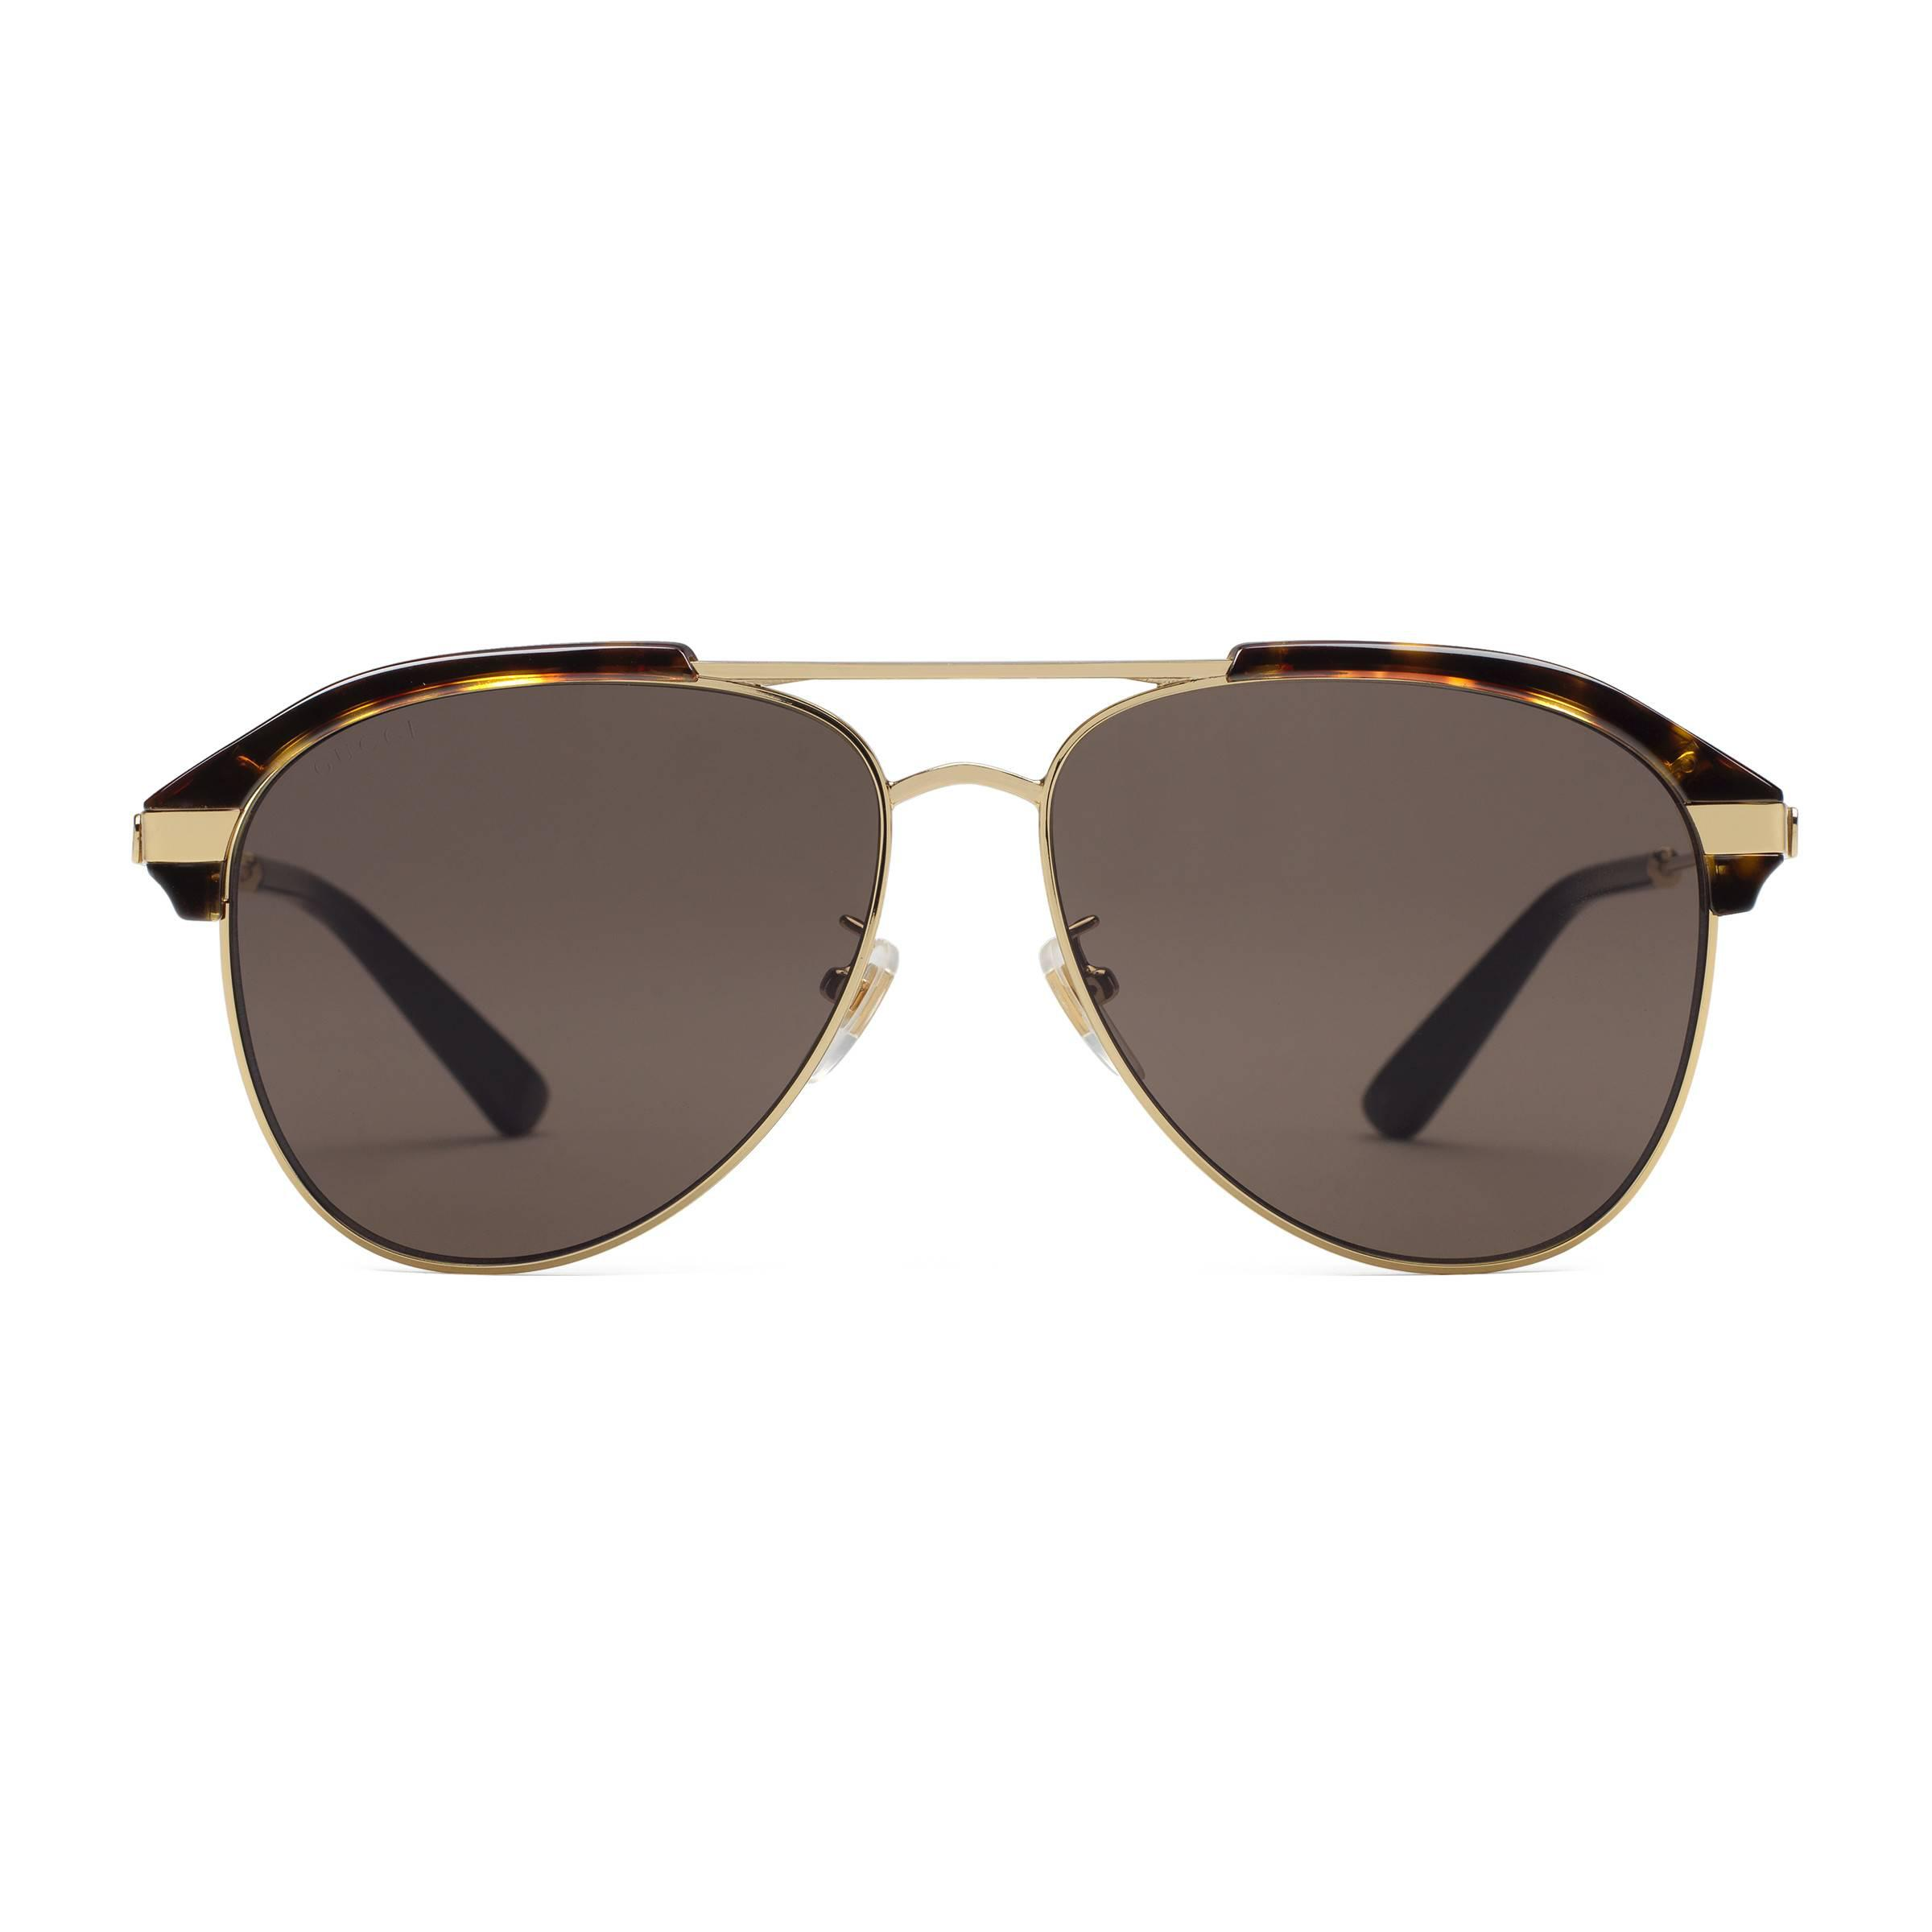 a7e572c9ac5 Gucci Specialized Fit Aviator Metal Sunglasses in Brown for Men - Lyst